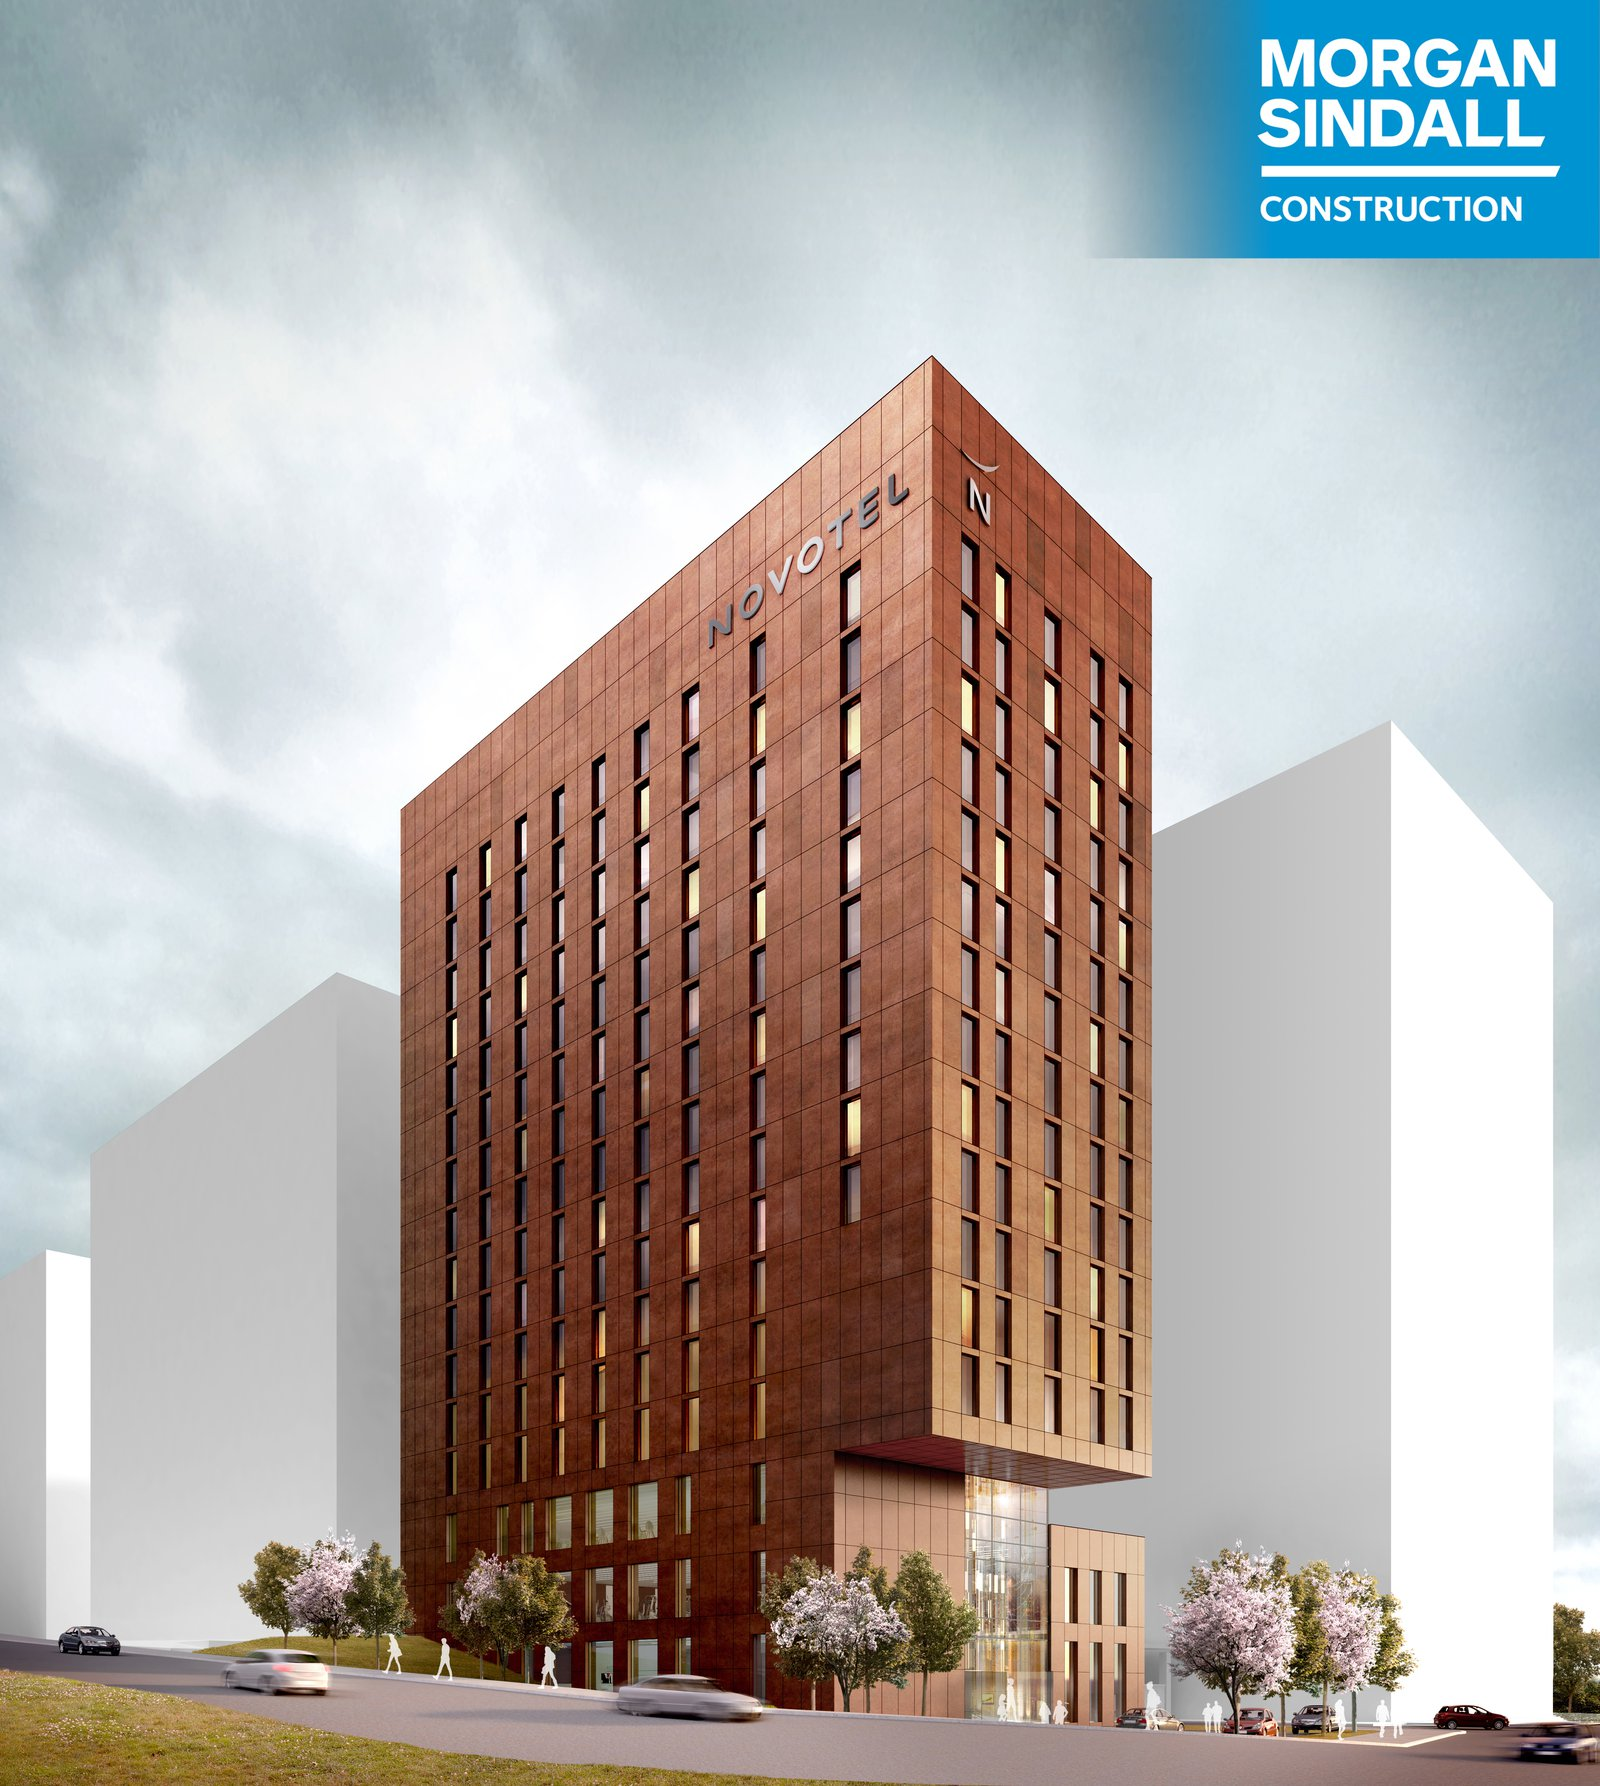 Image of the hotel building proposed for the Paddington Village site in Liverpool